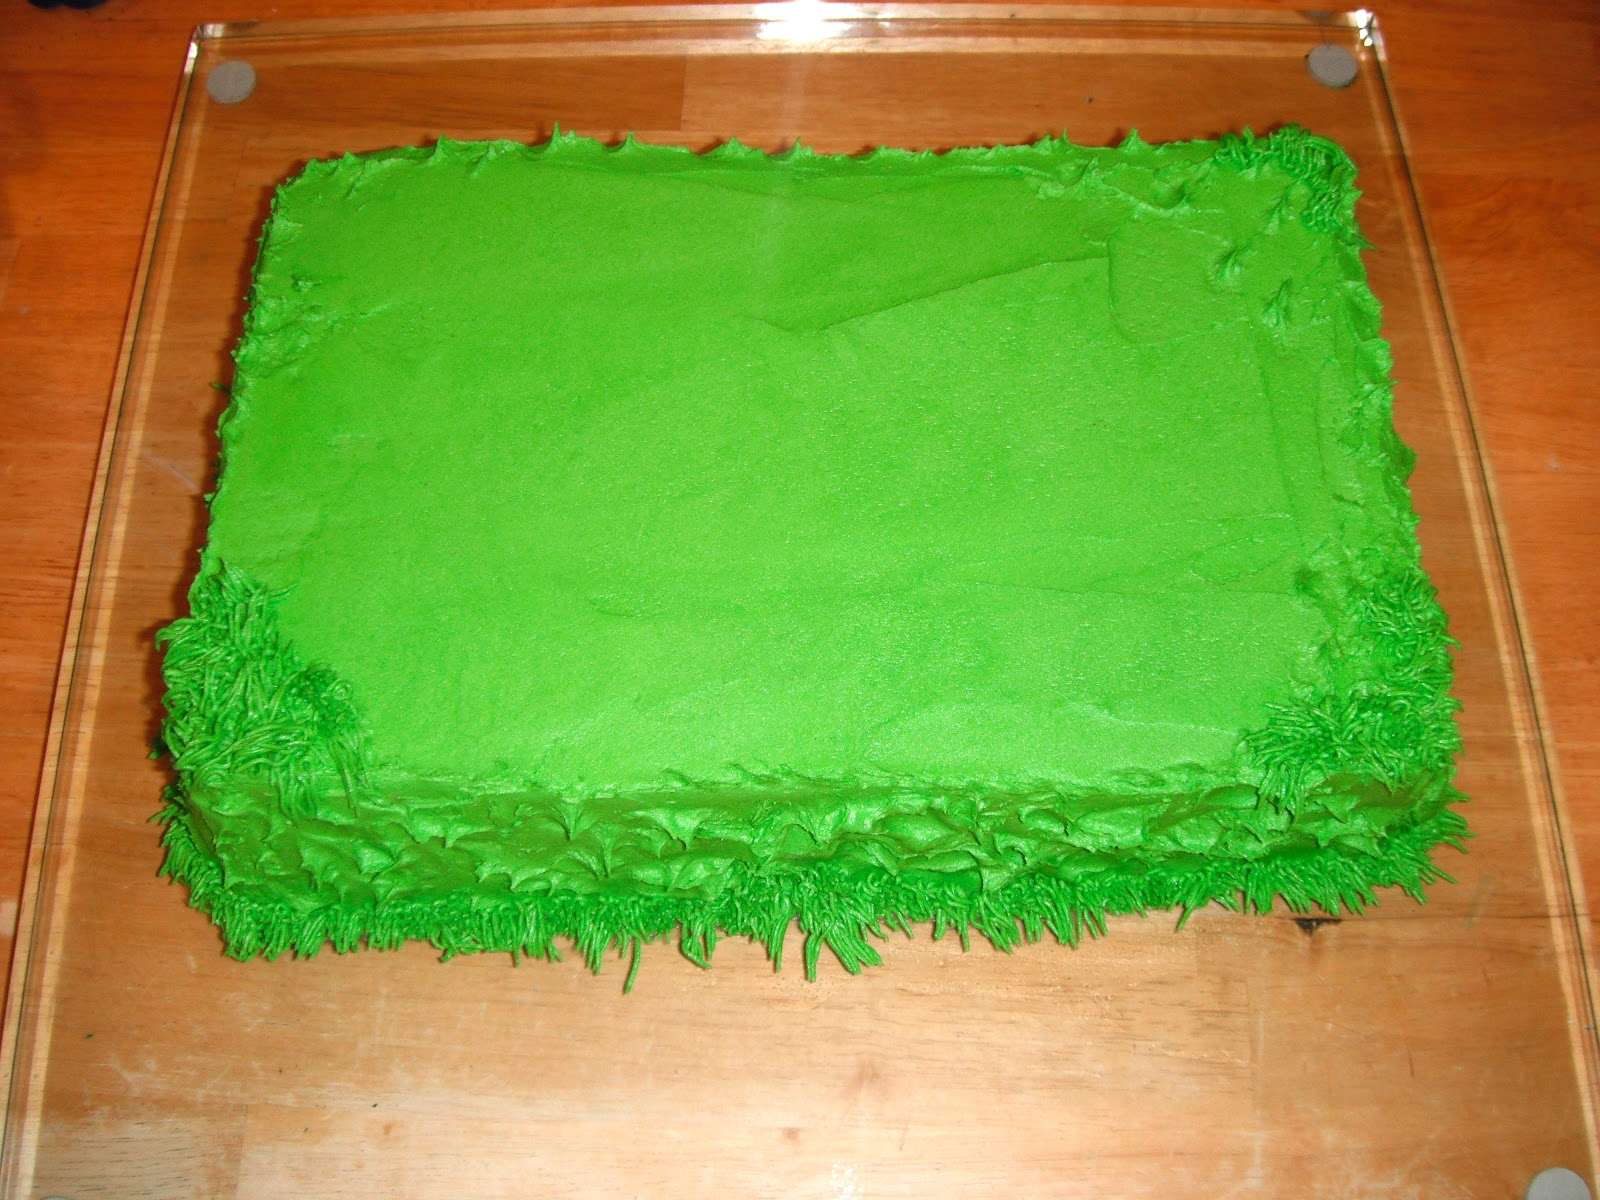 Cake Decorating Tip To Make Grass : P-ART-Y: How to Make a Soccer Goal Post Cake